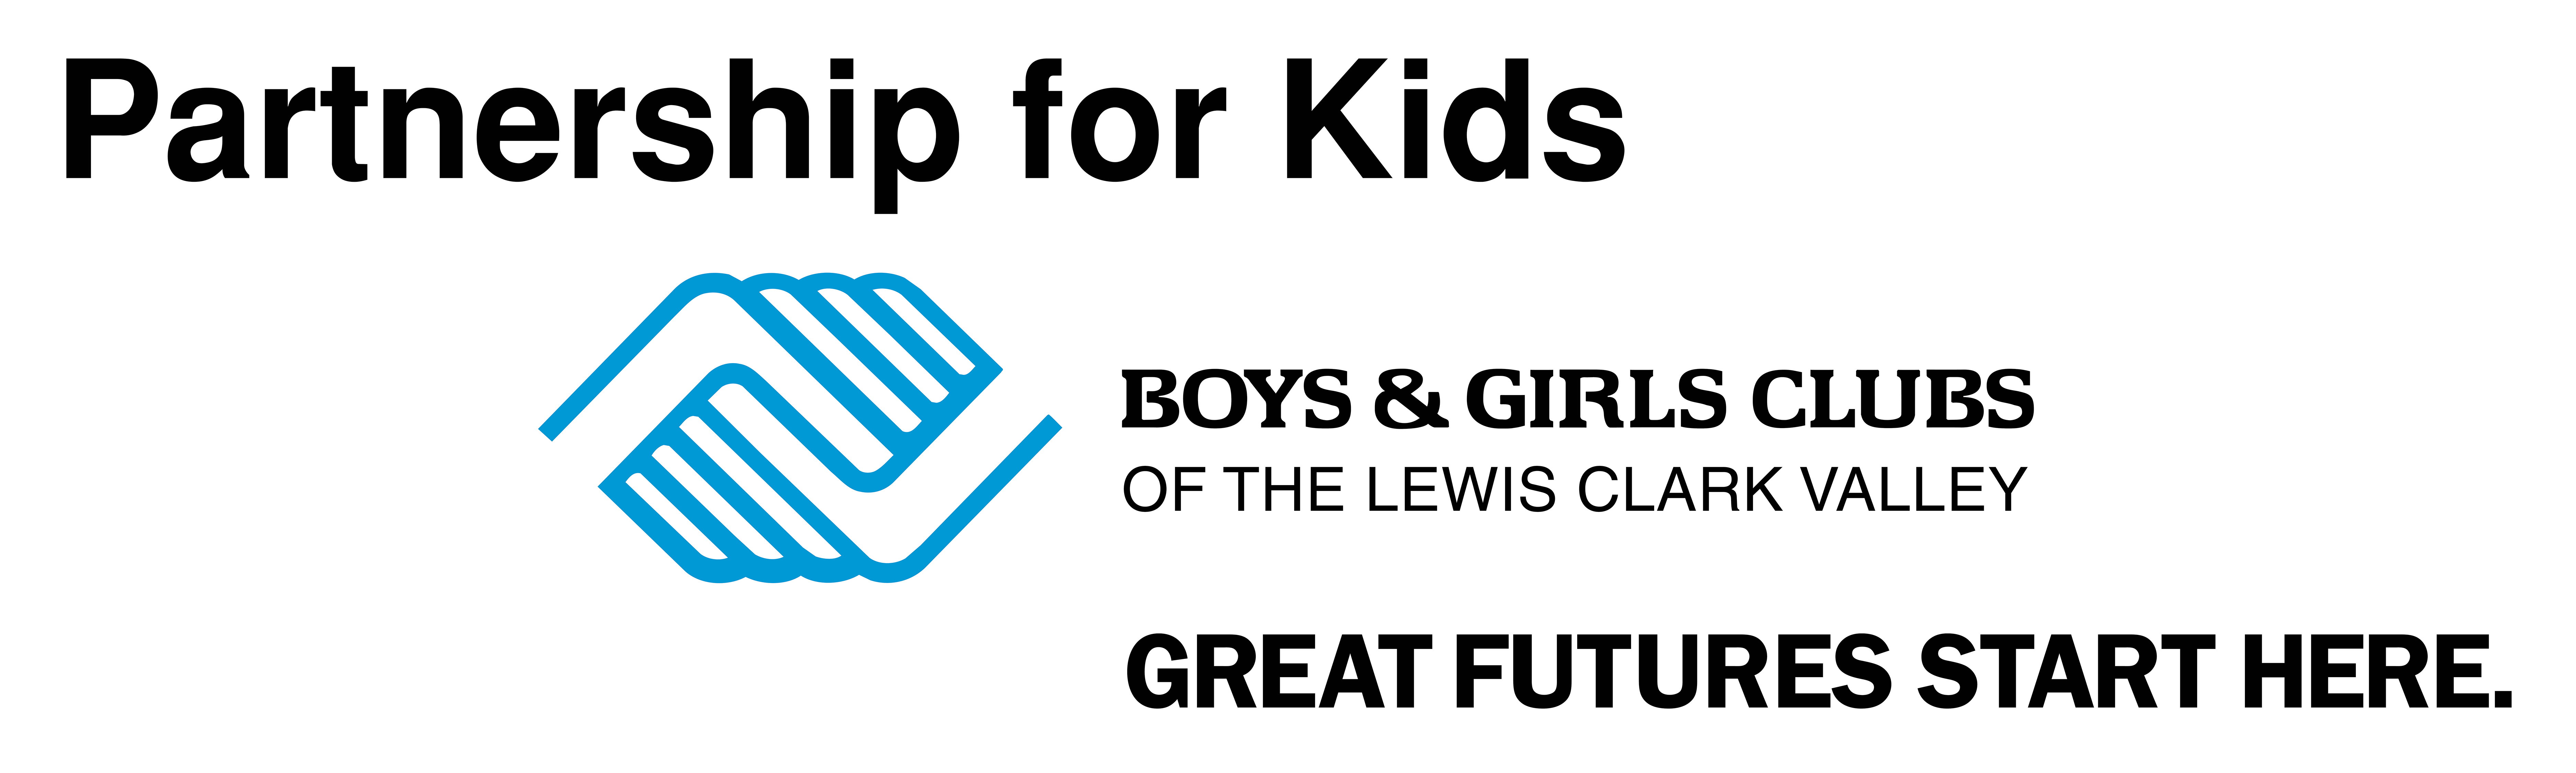 Boys and Girls Club Partnership for Kids Banner (003)2